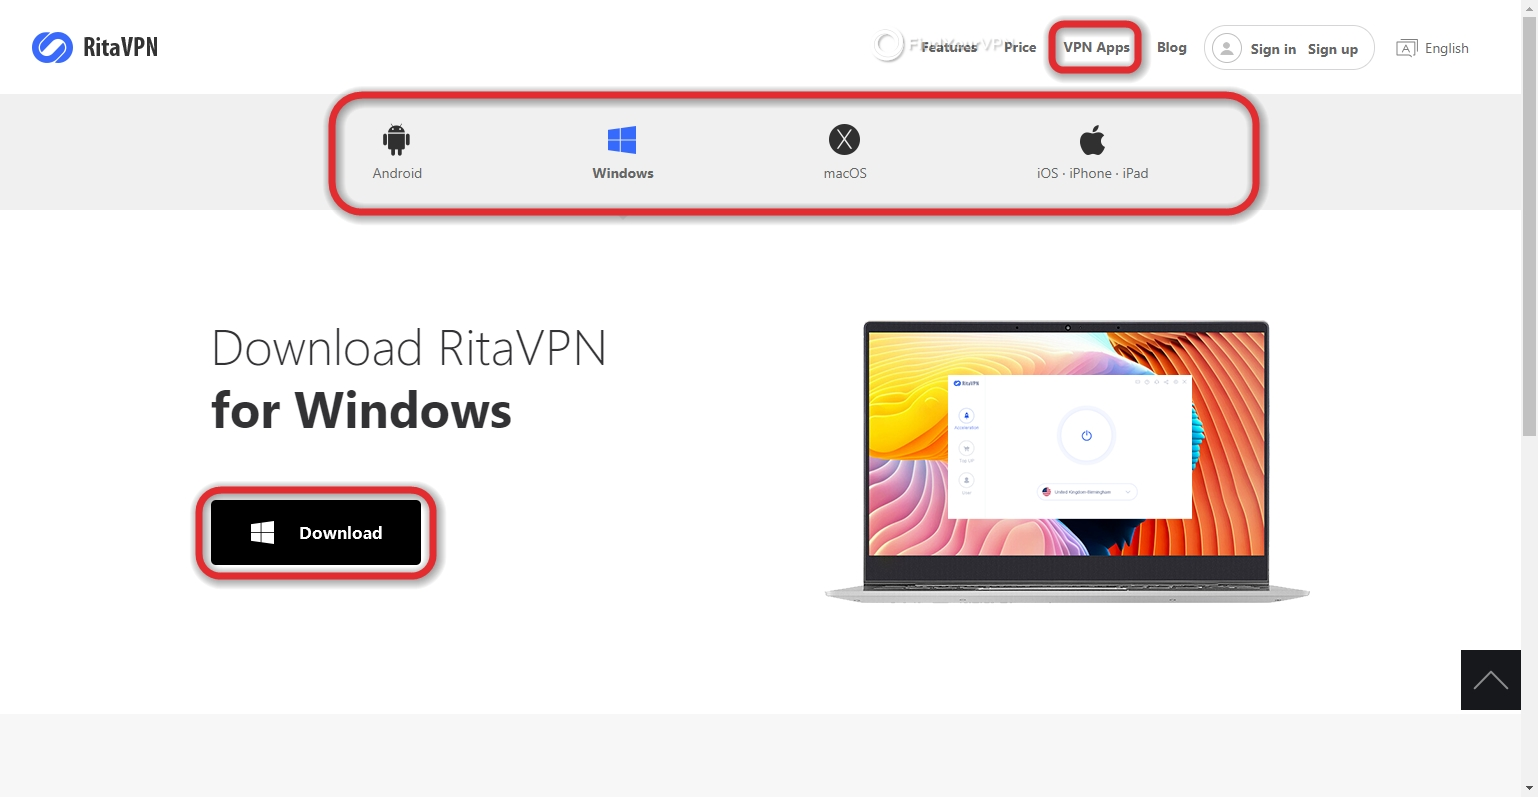 RitaVPN can be downloaded on multiple devices